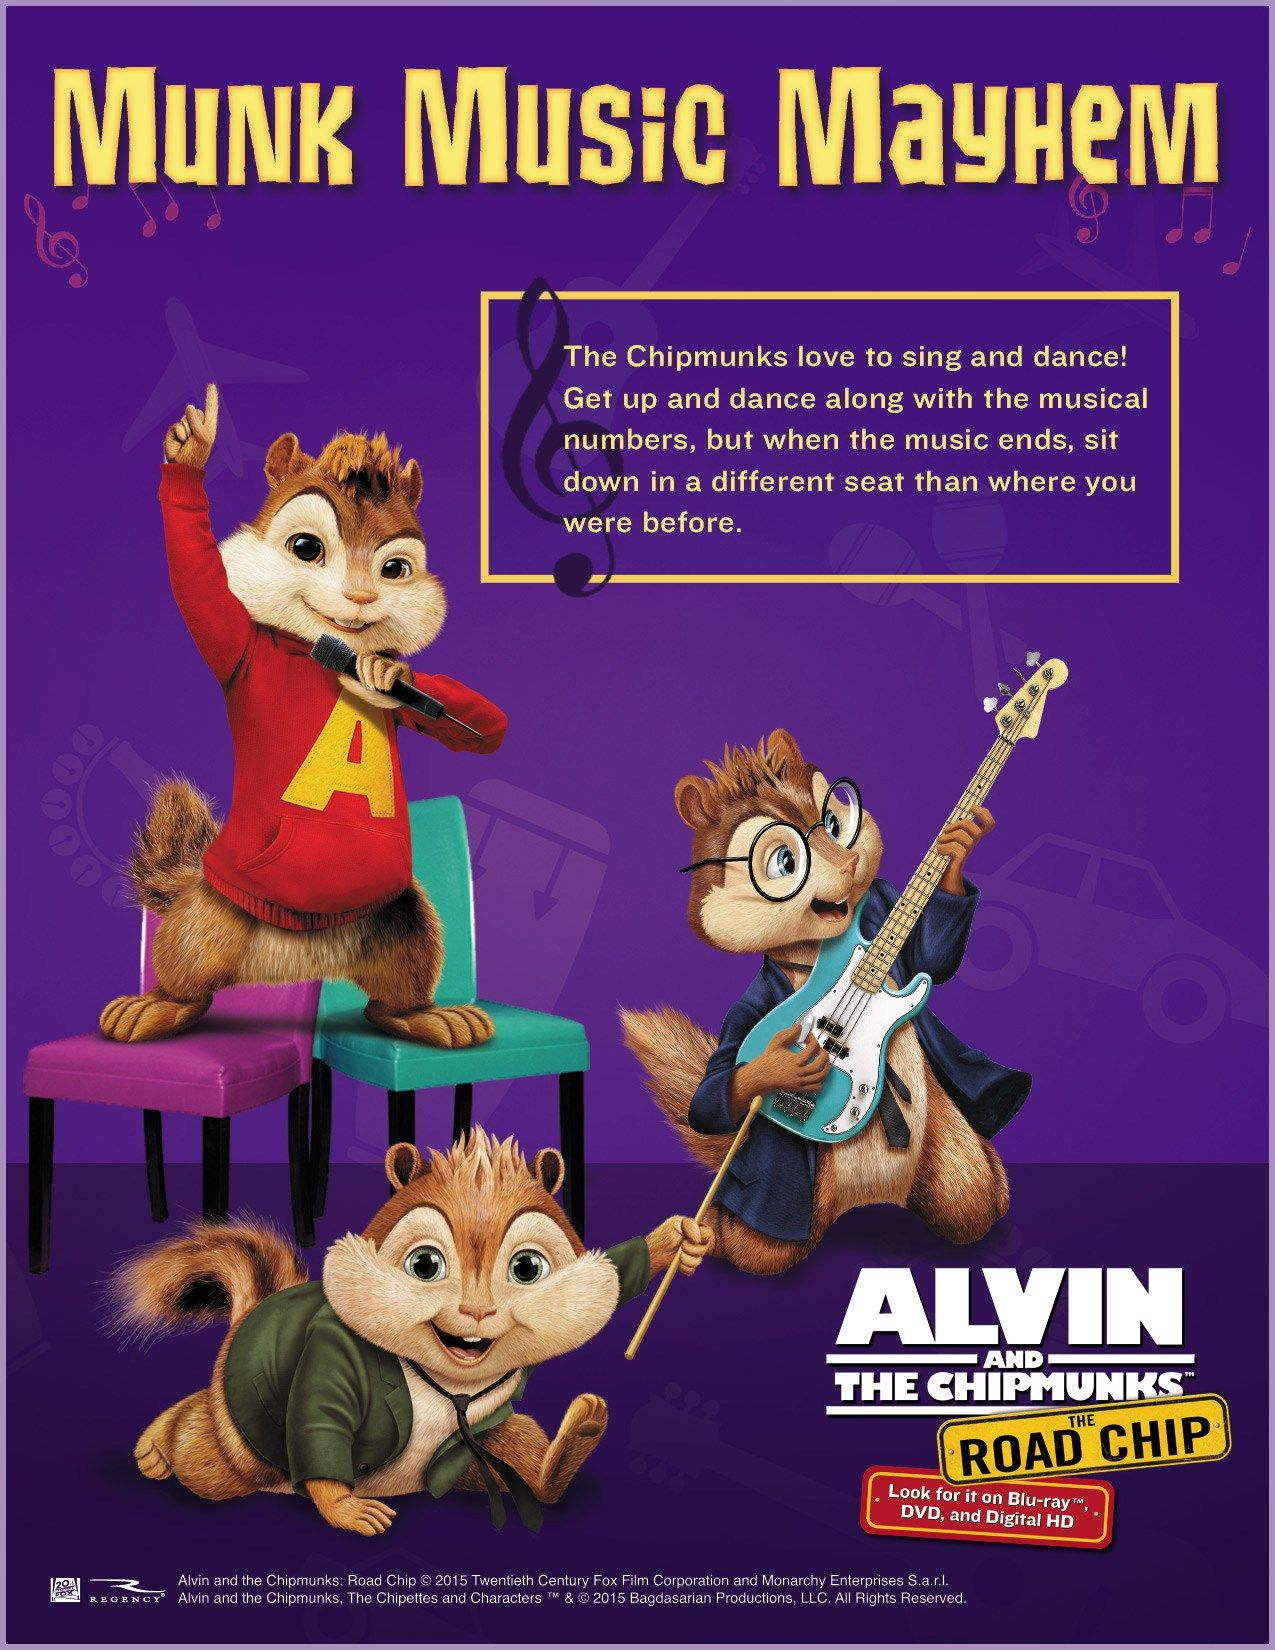 Alvin And The Chipmunks The Road Chip Release And Giveaway With